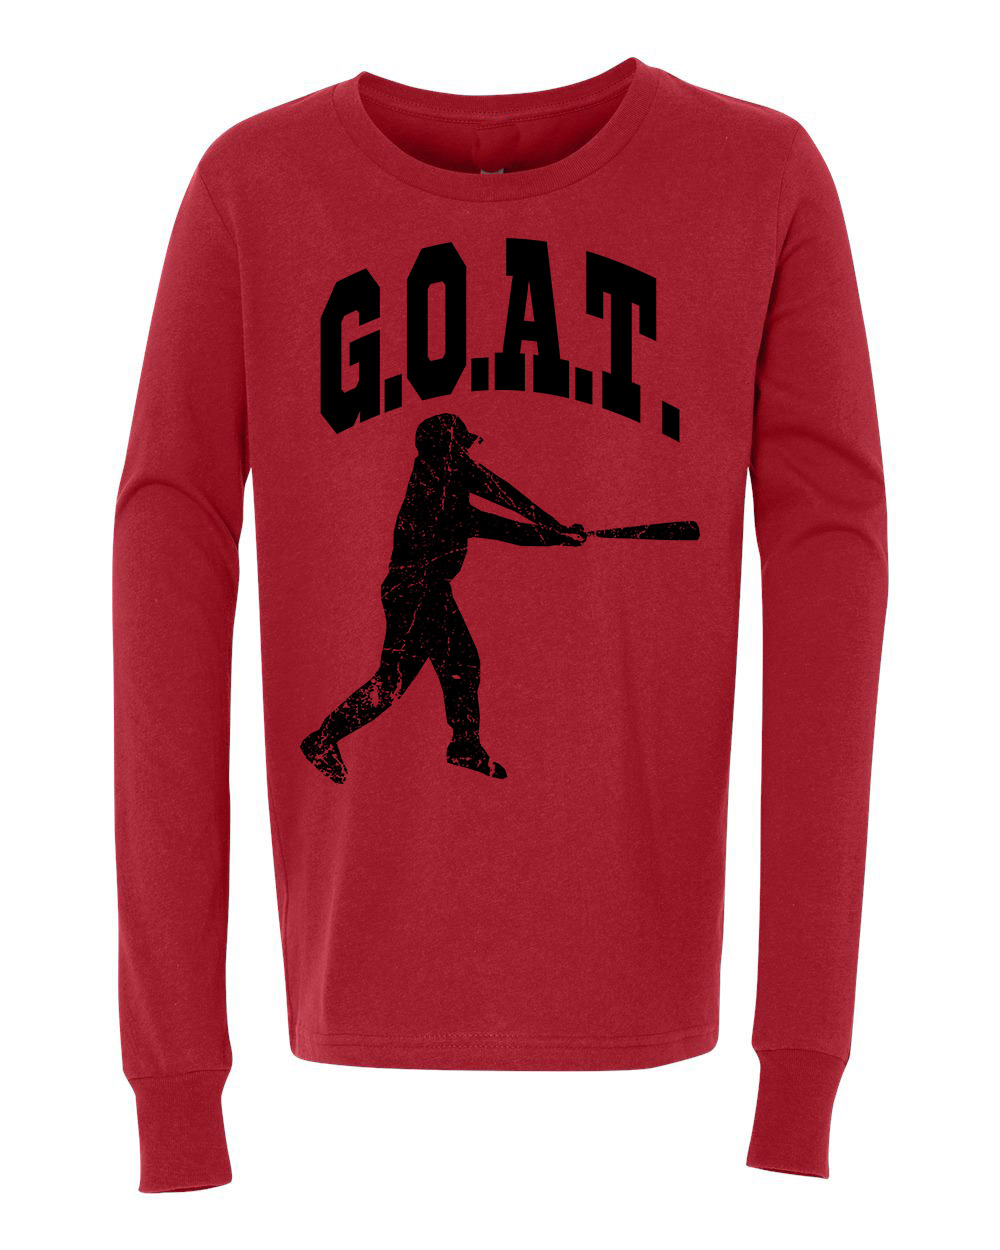 Greatest Of All Times G.O.A.T Baseball Youth Long Sleeve T-Shirt